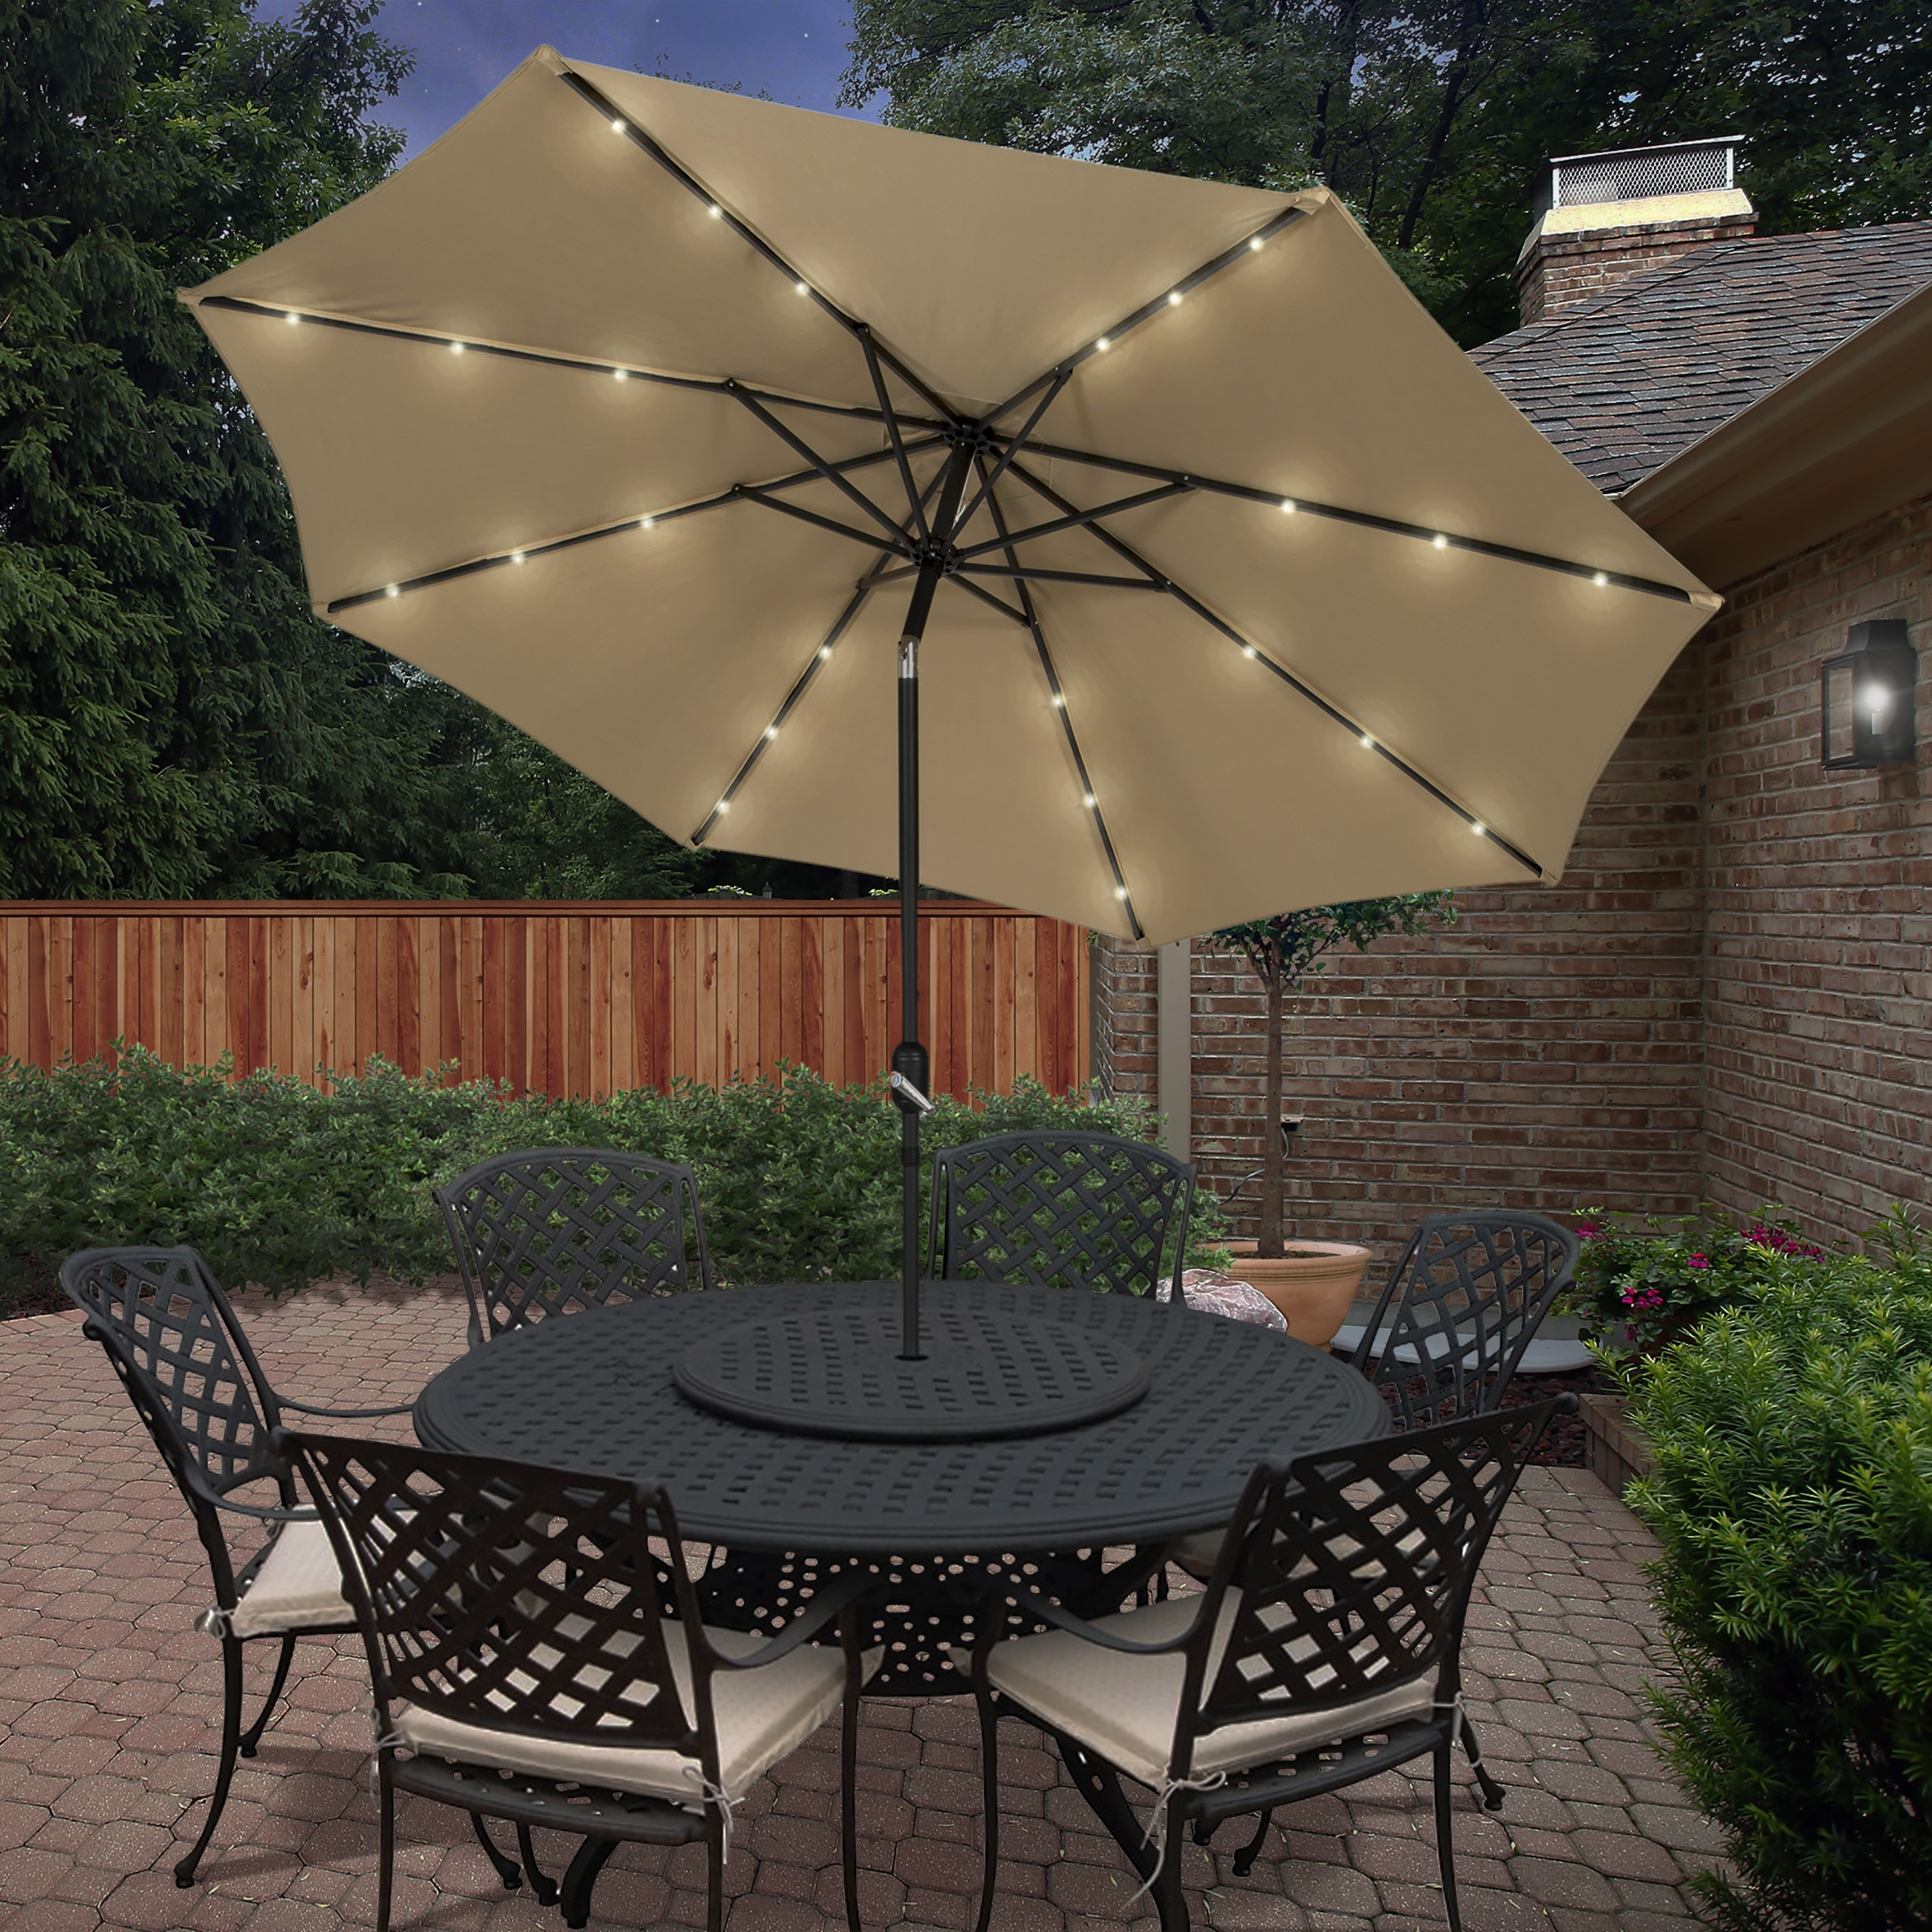 Lighted Umbrellas For Patio For Fashionable Best Choice Products 10' Deluxe Solar Led Lighted Patio Umbrella (View 8 of 20)